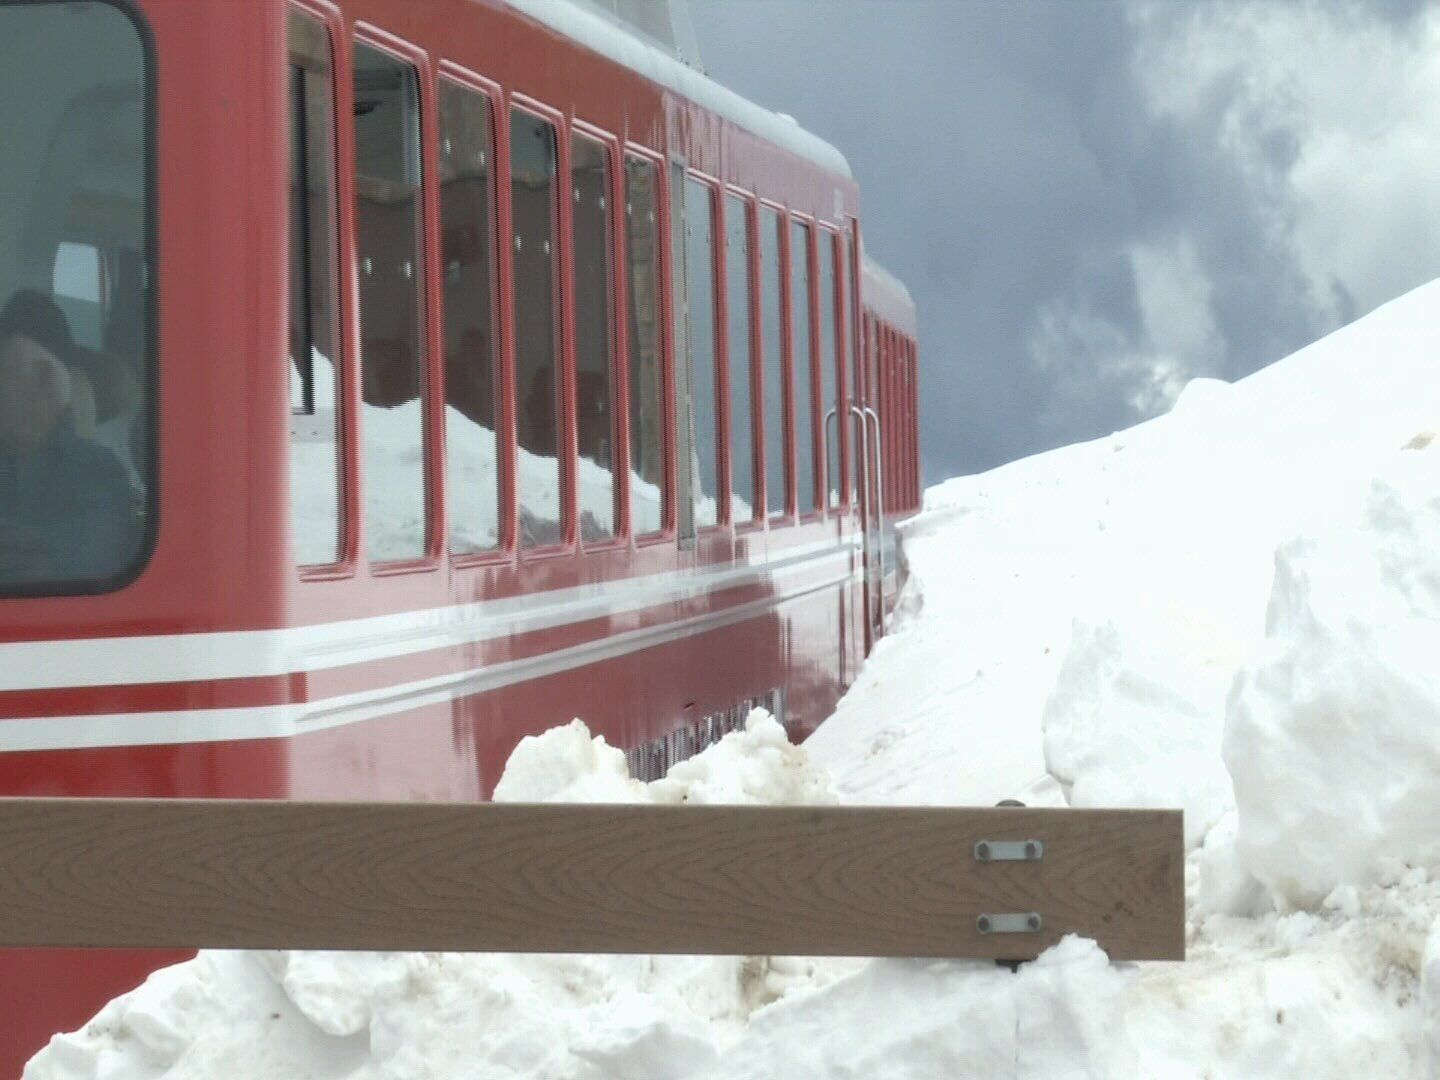 The Cog Railway makes it way up Pikes Peak during the winter season.